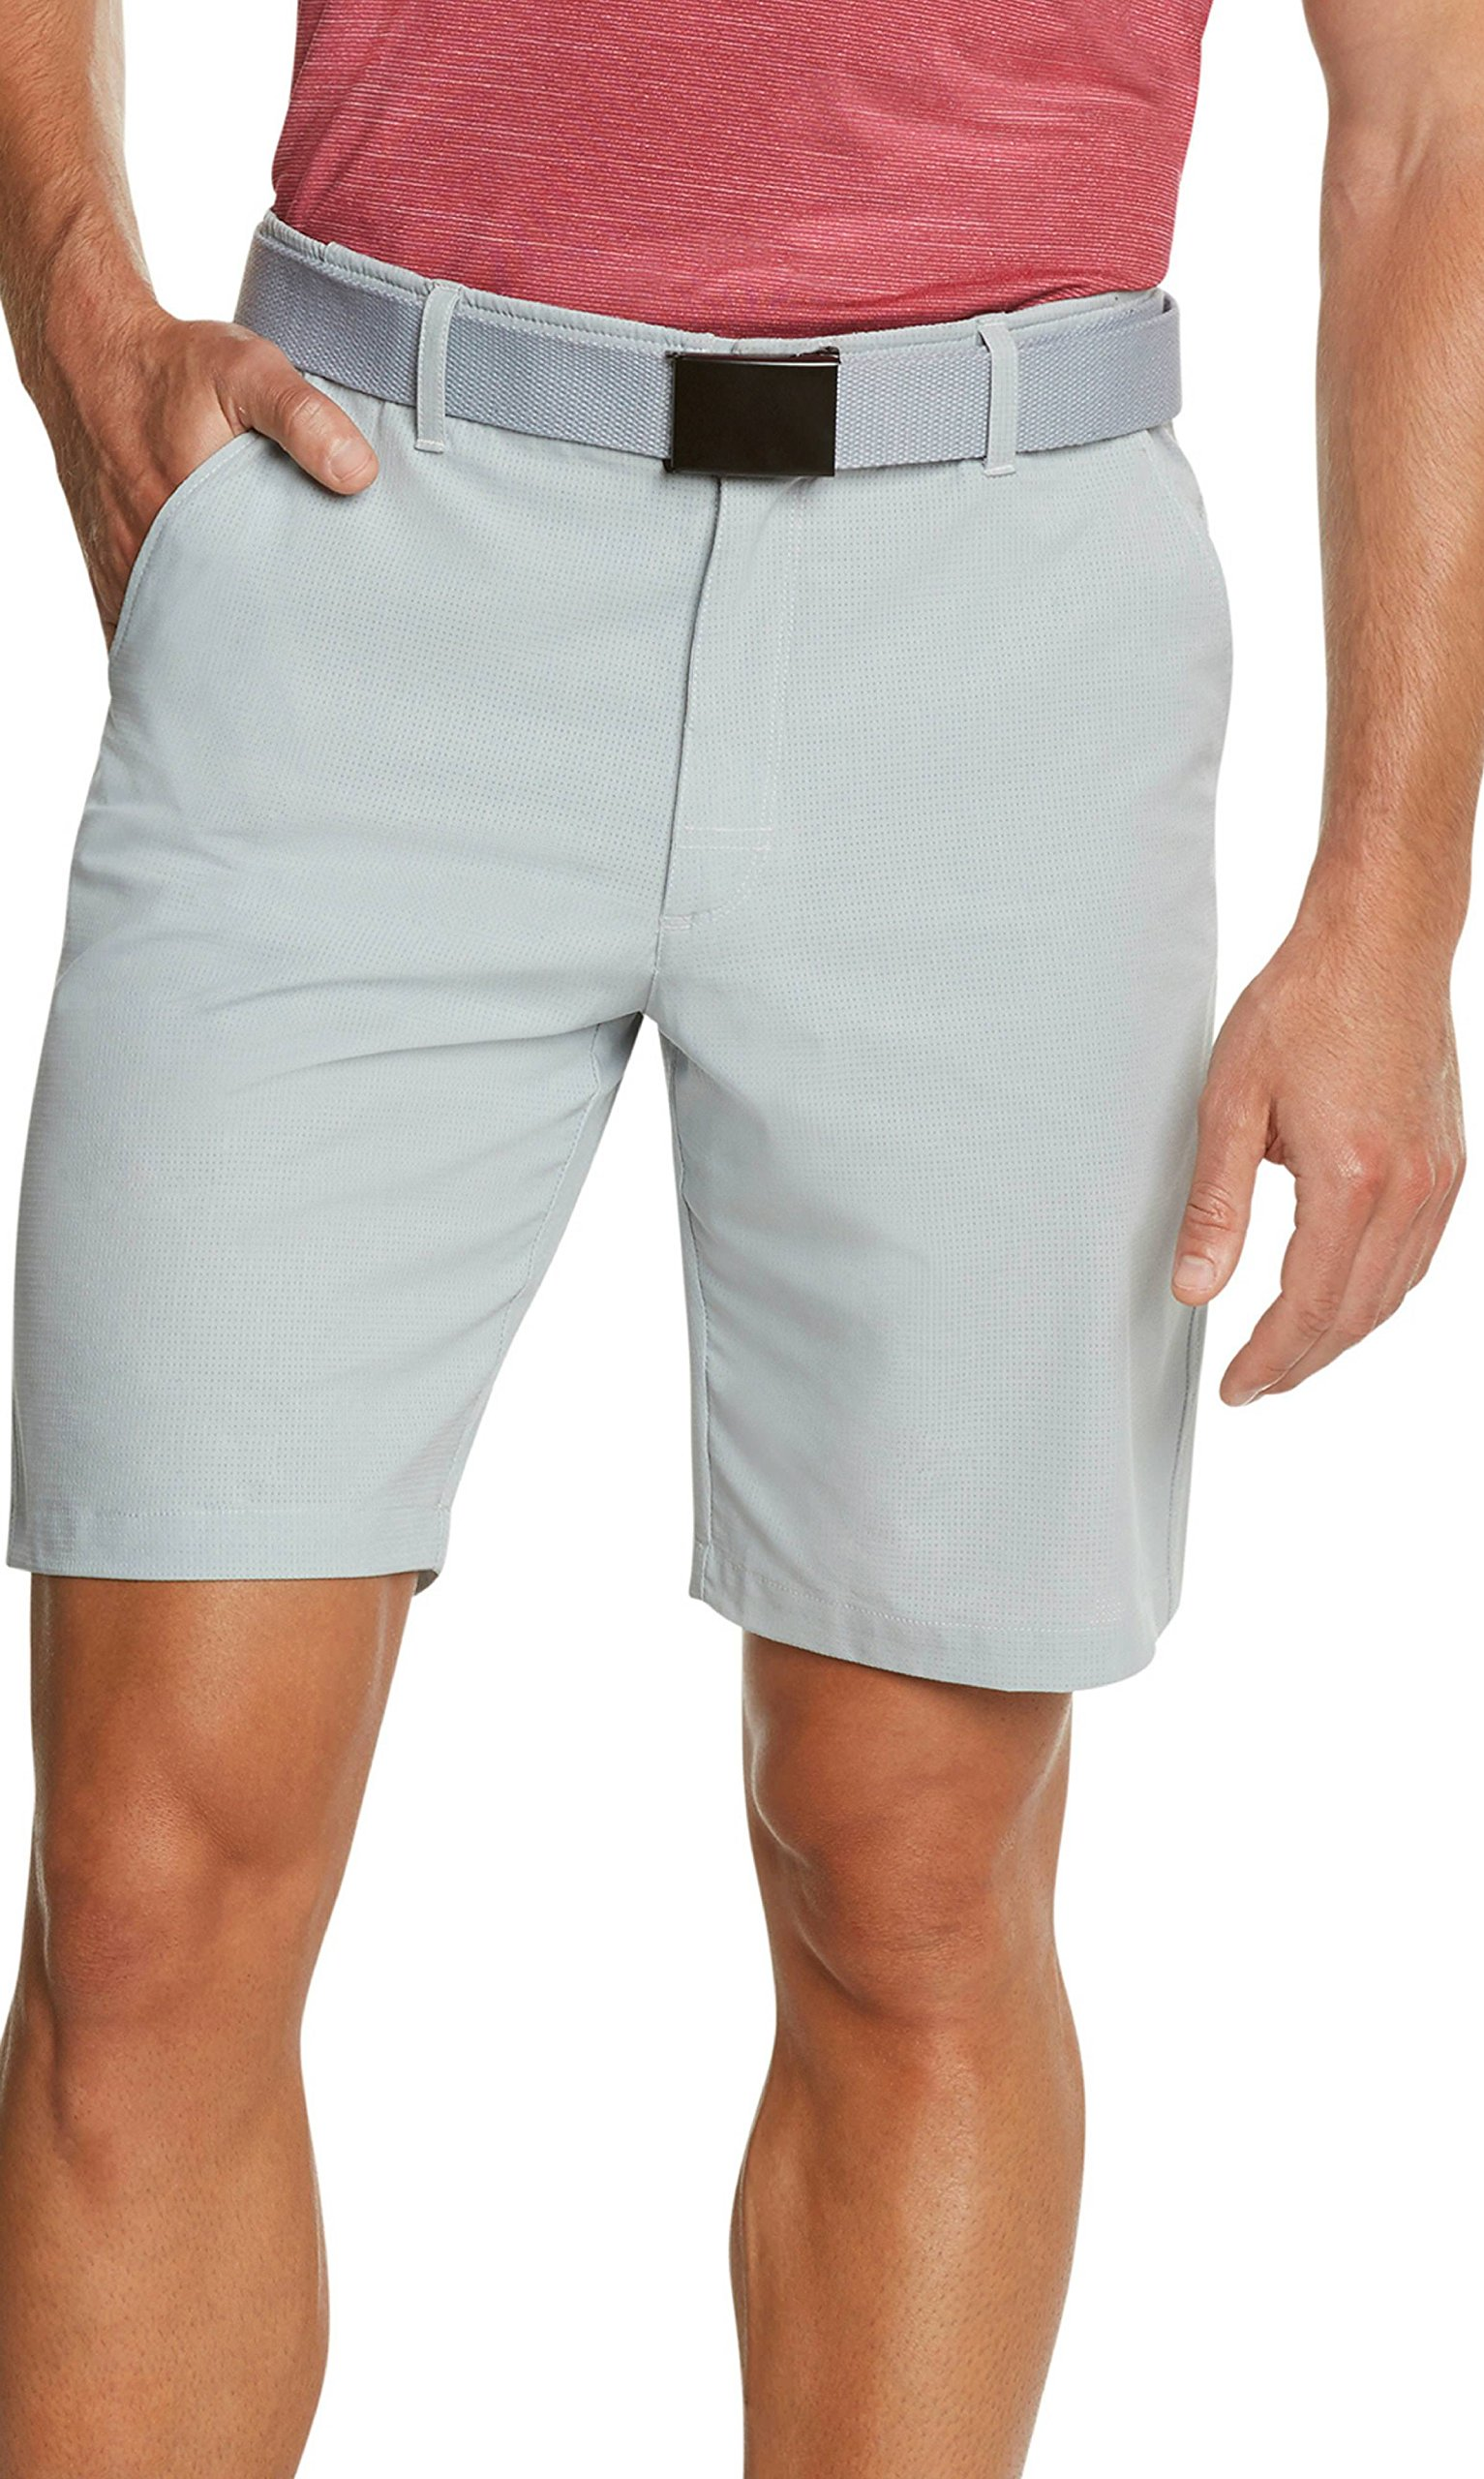 Jolt Gear Dry Fit Golf Shorts for Men – Casual Mens Shorts Moisture Wicking - Men's Chino Shorts with Elastic Waistband